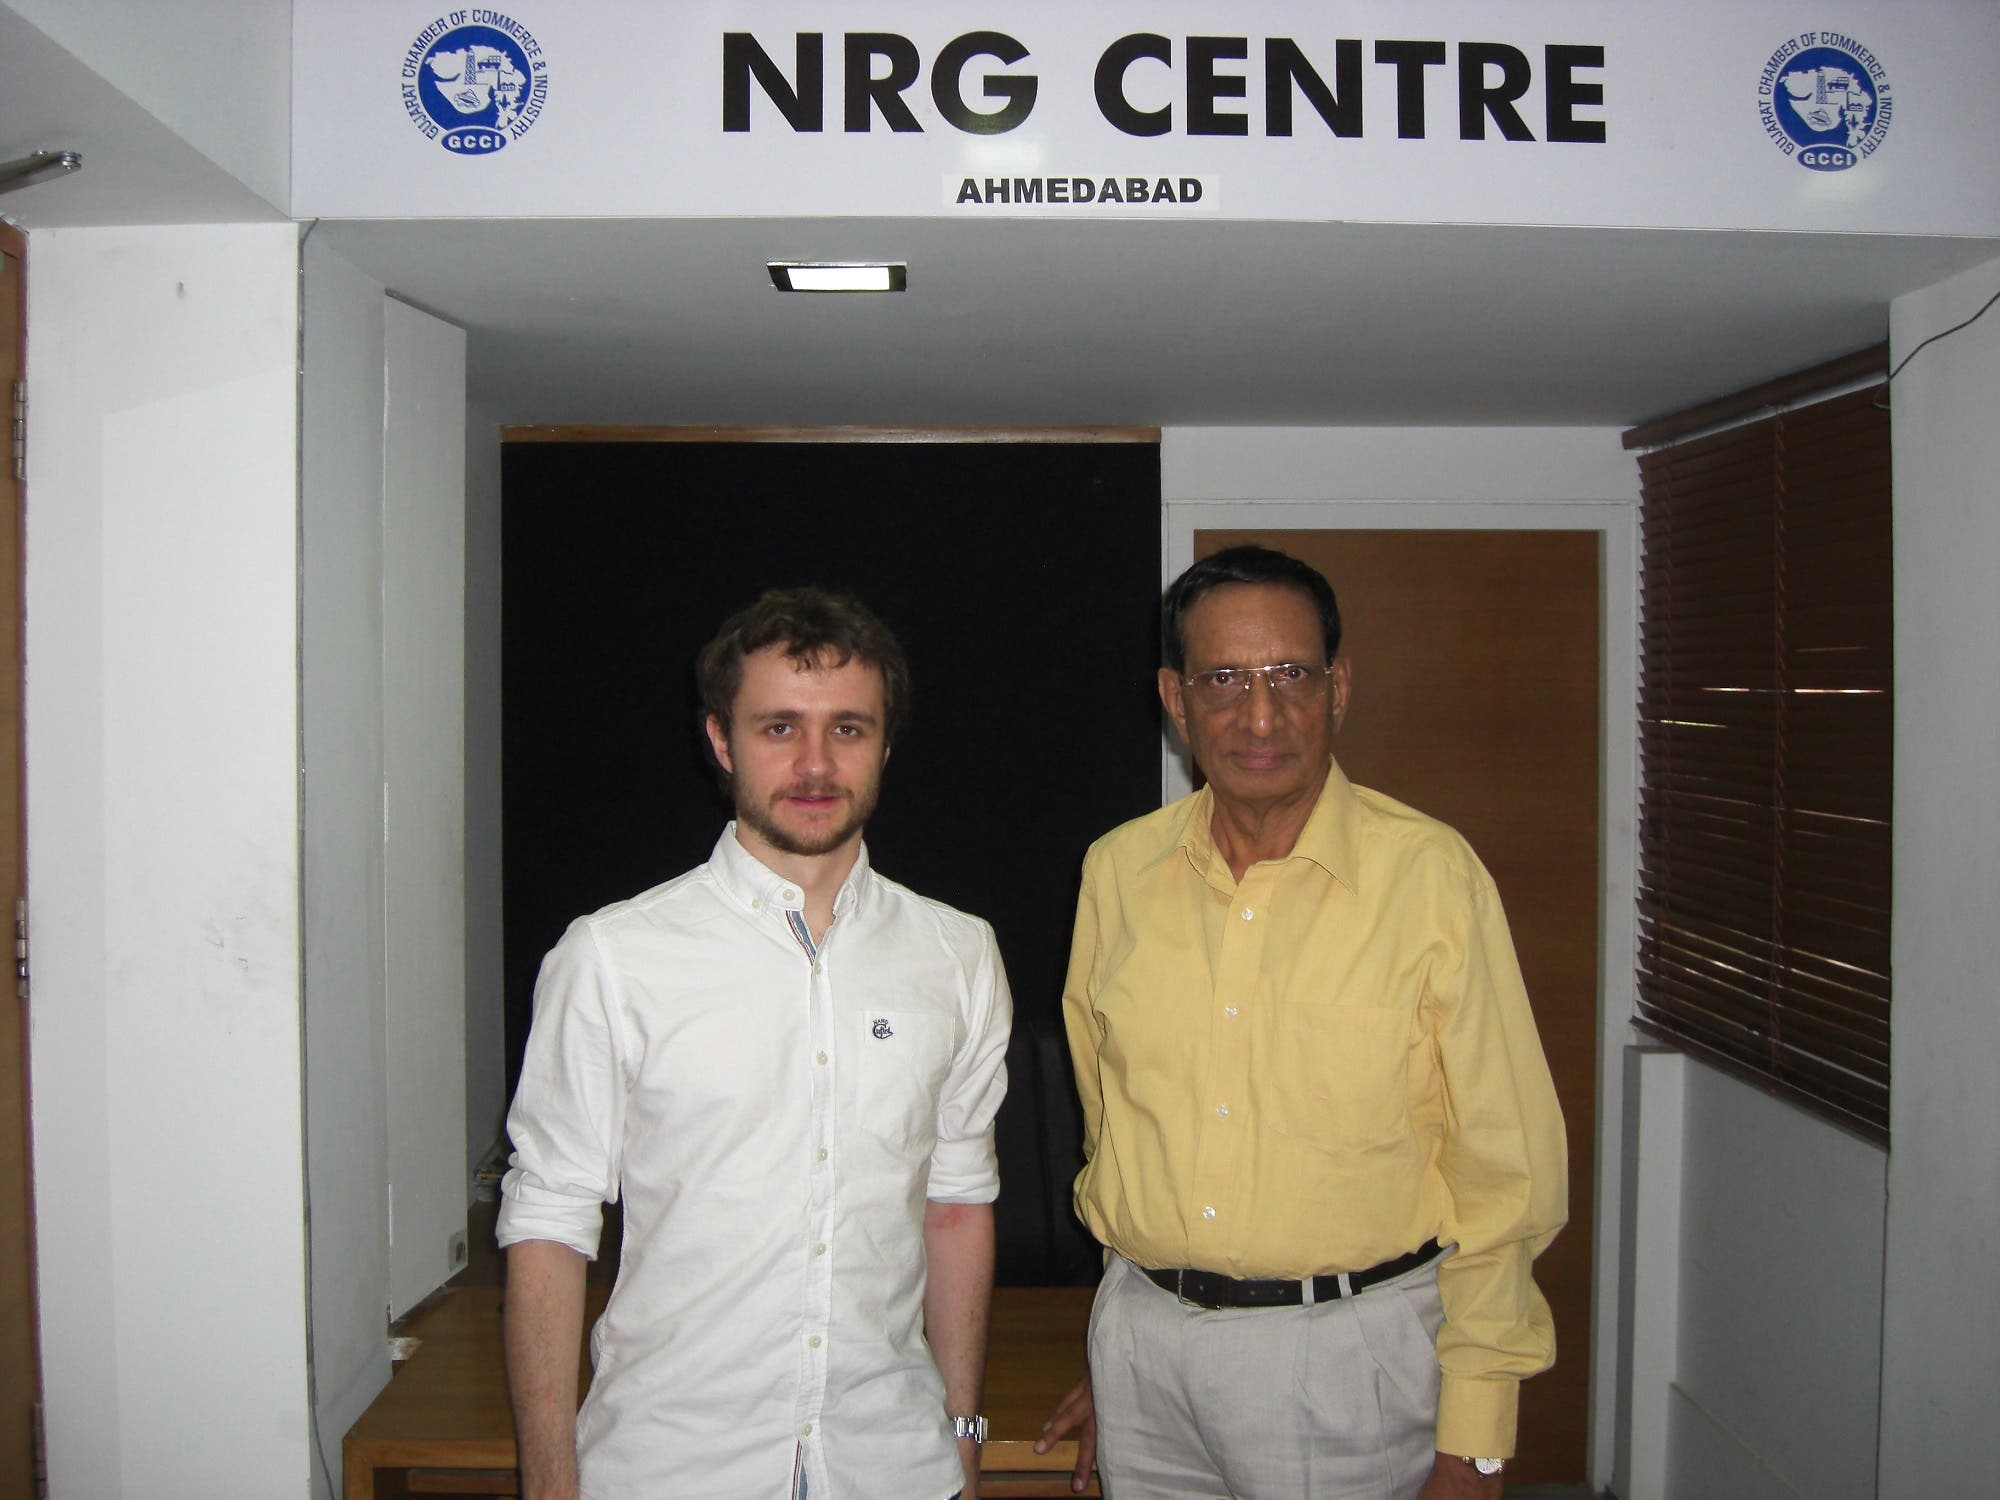 Former Indian diplomat K H Patel with UK's researcher-student Graeme Tolley. (Supplied)